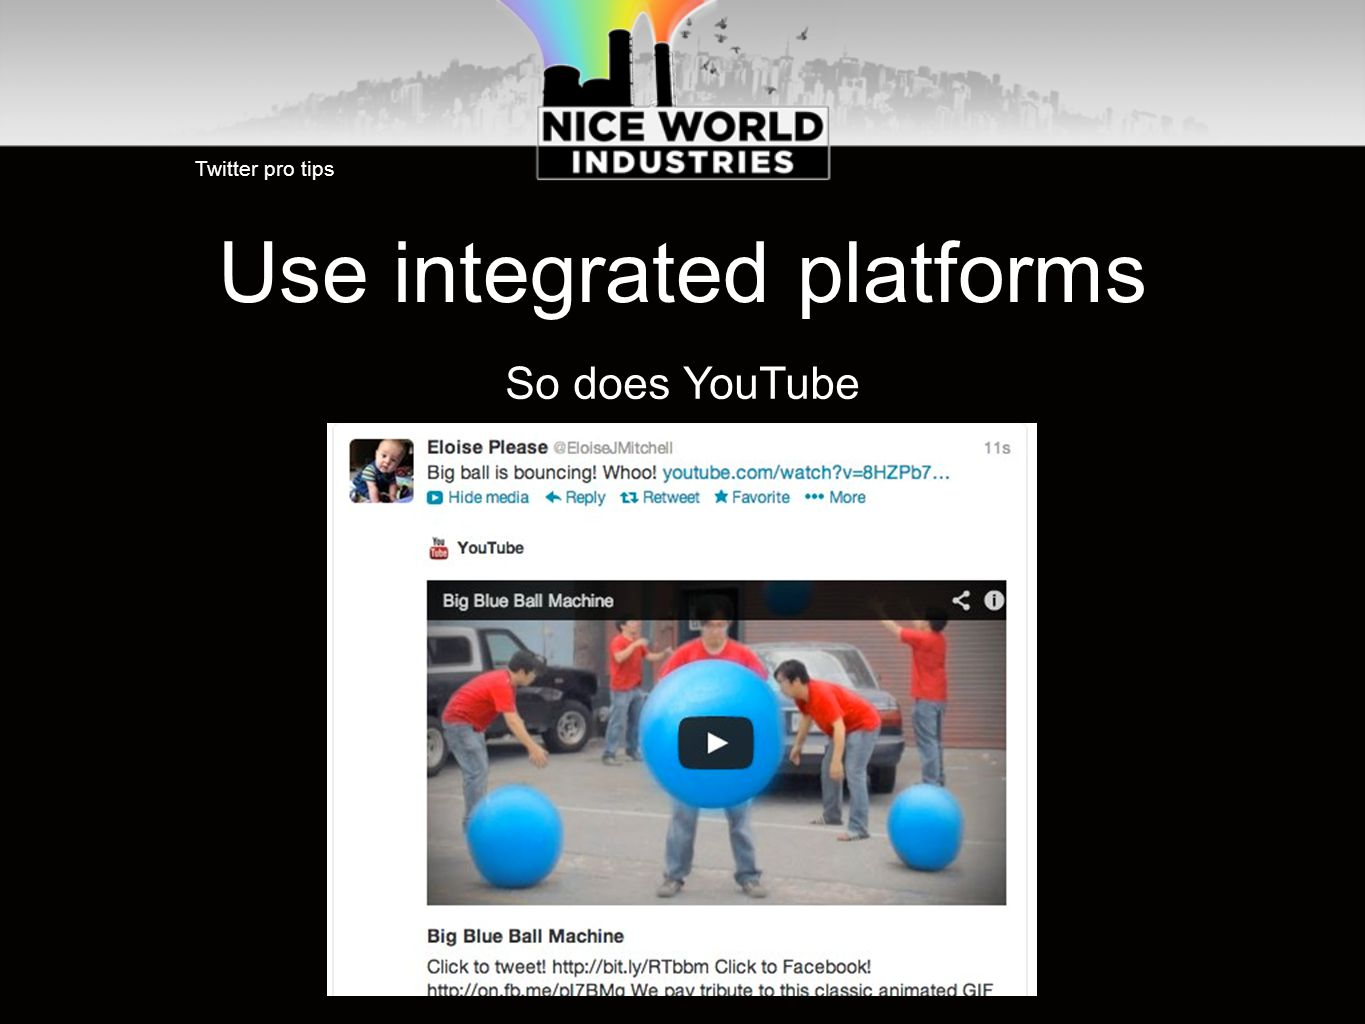 Use integrated platforms Twitter pro tips So does YouTube